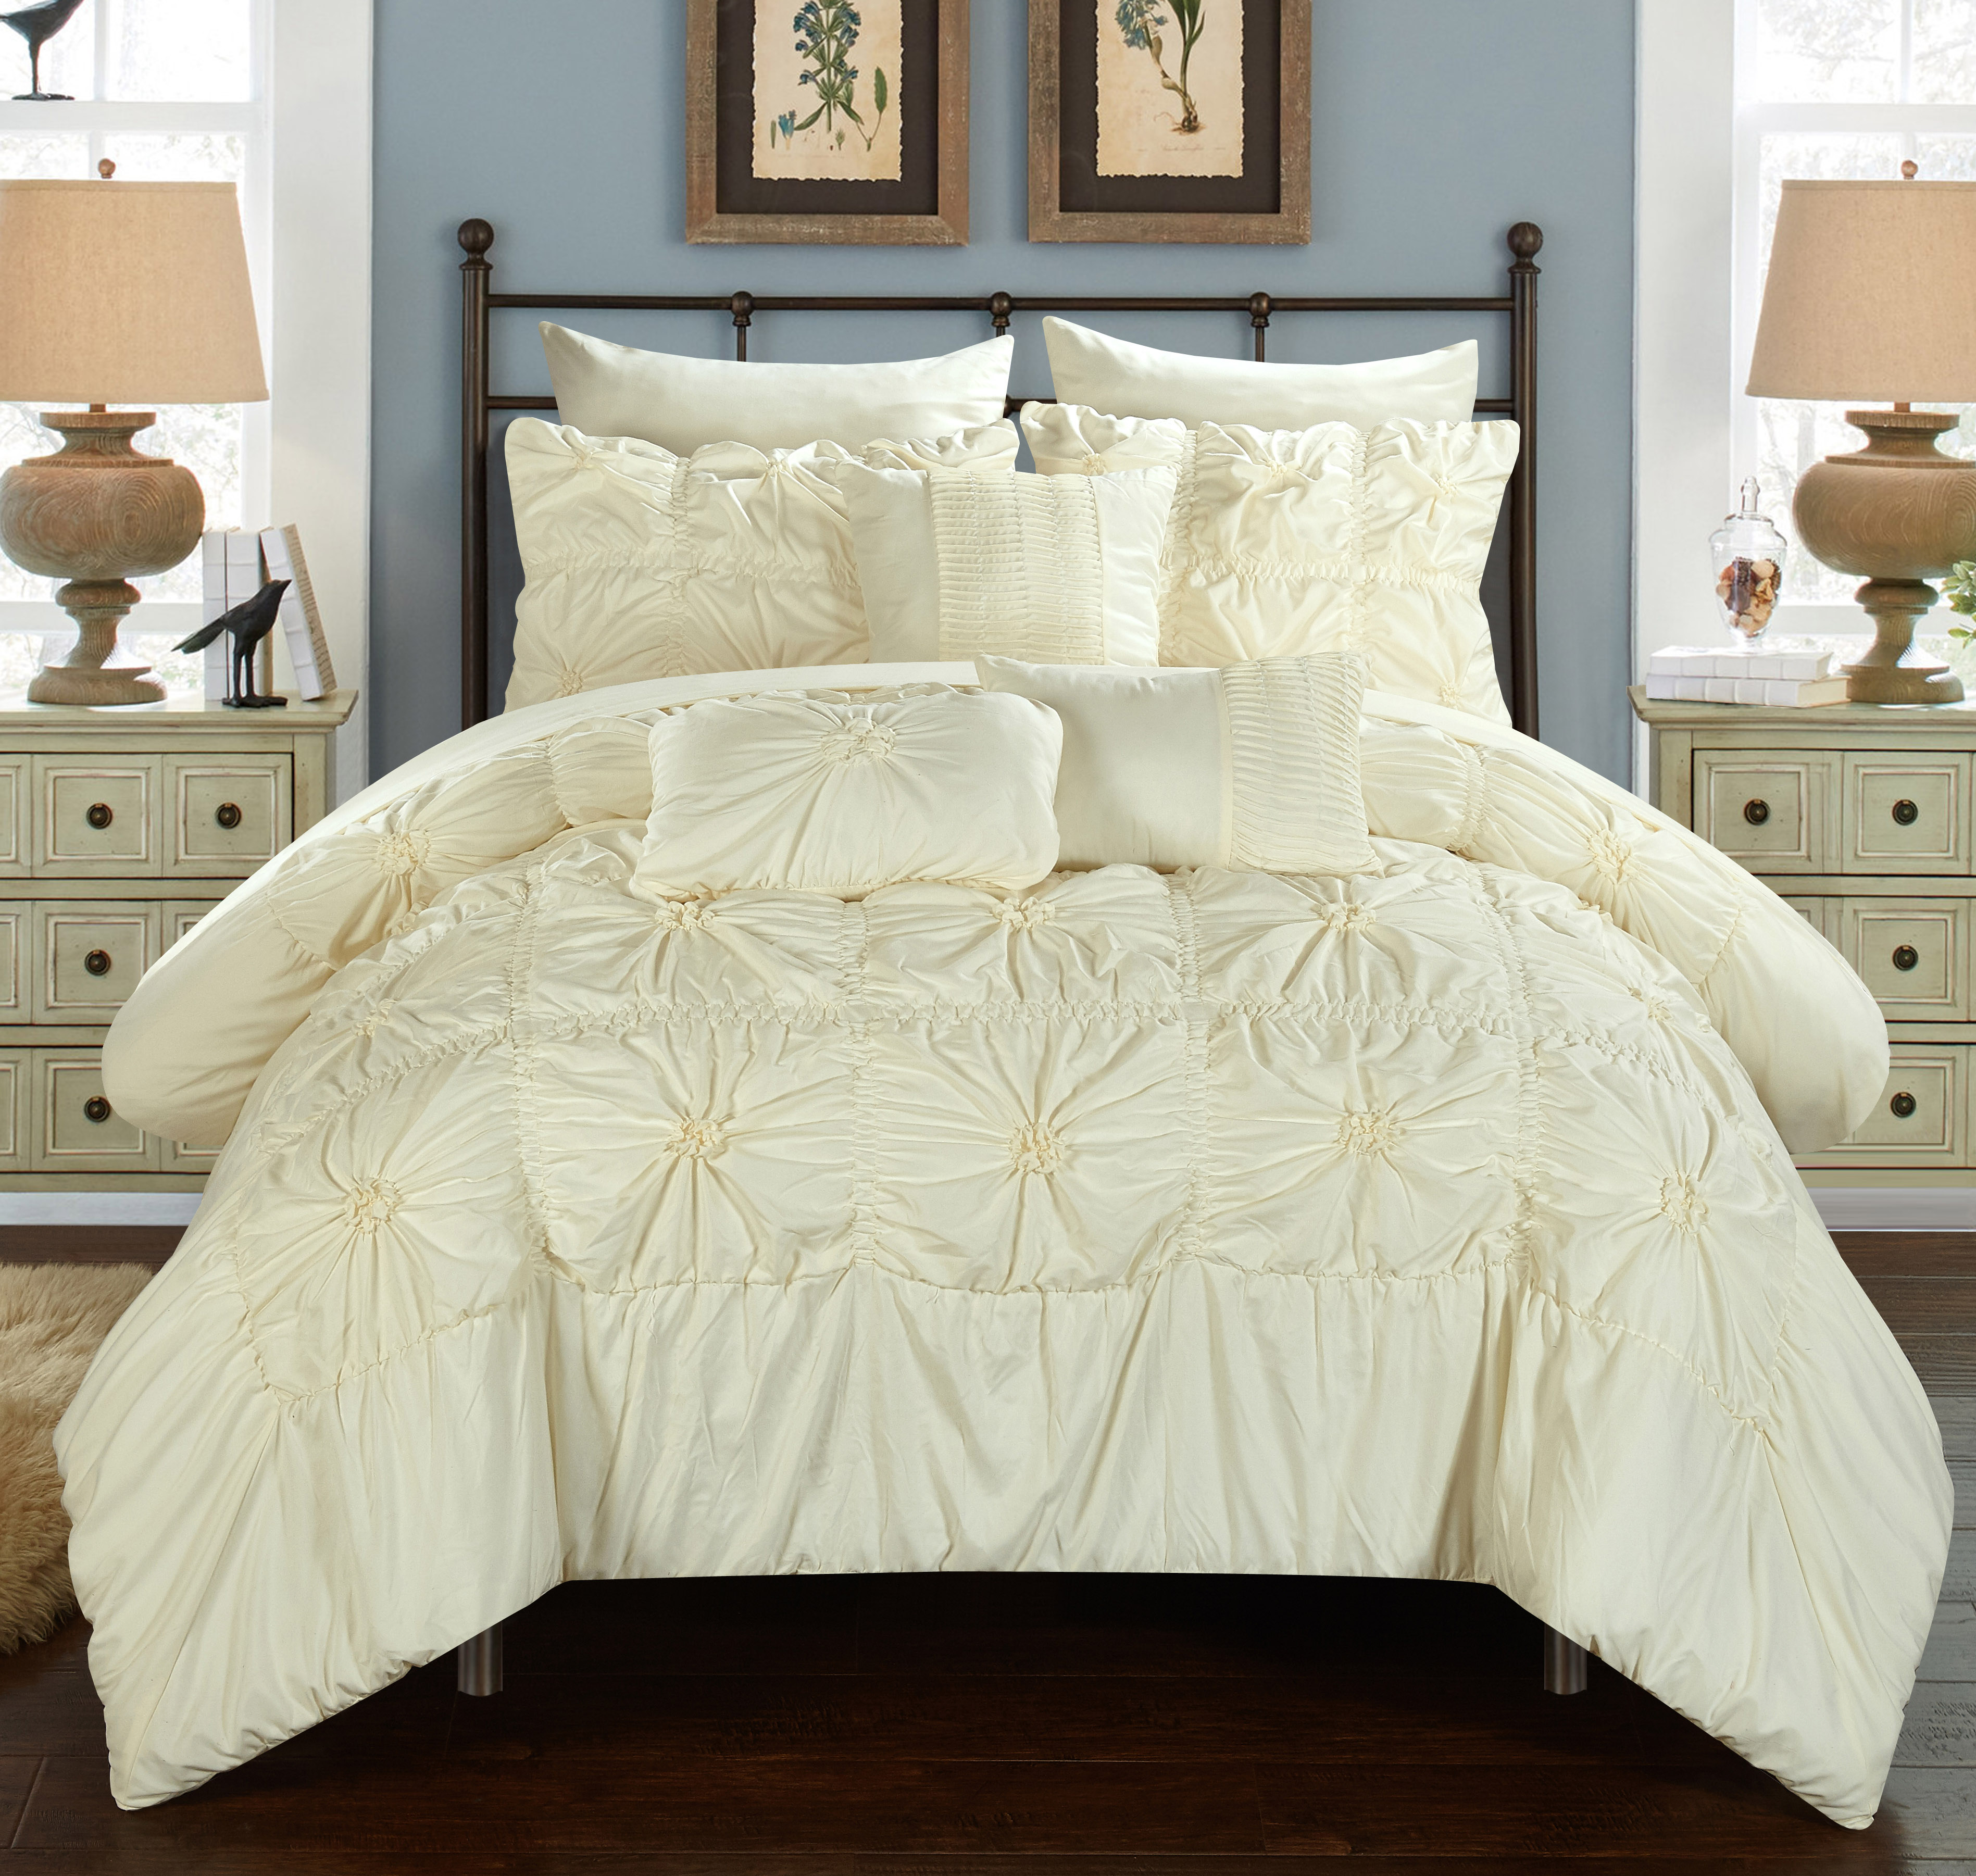 Chic Home 8-Piece Grantfield Floral Pinch Pleat Ruffled Designer Embellished Twin Bed In a Bag Comforter Set Beige With sheet set